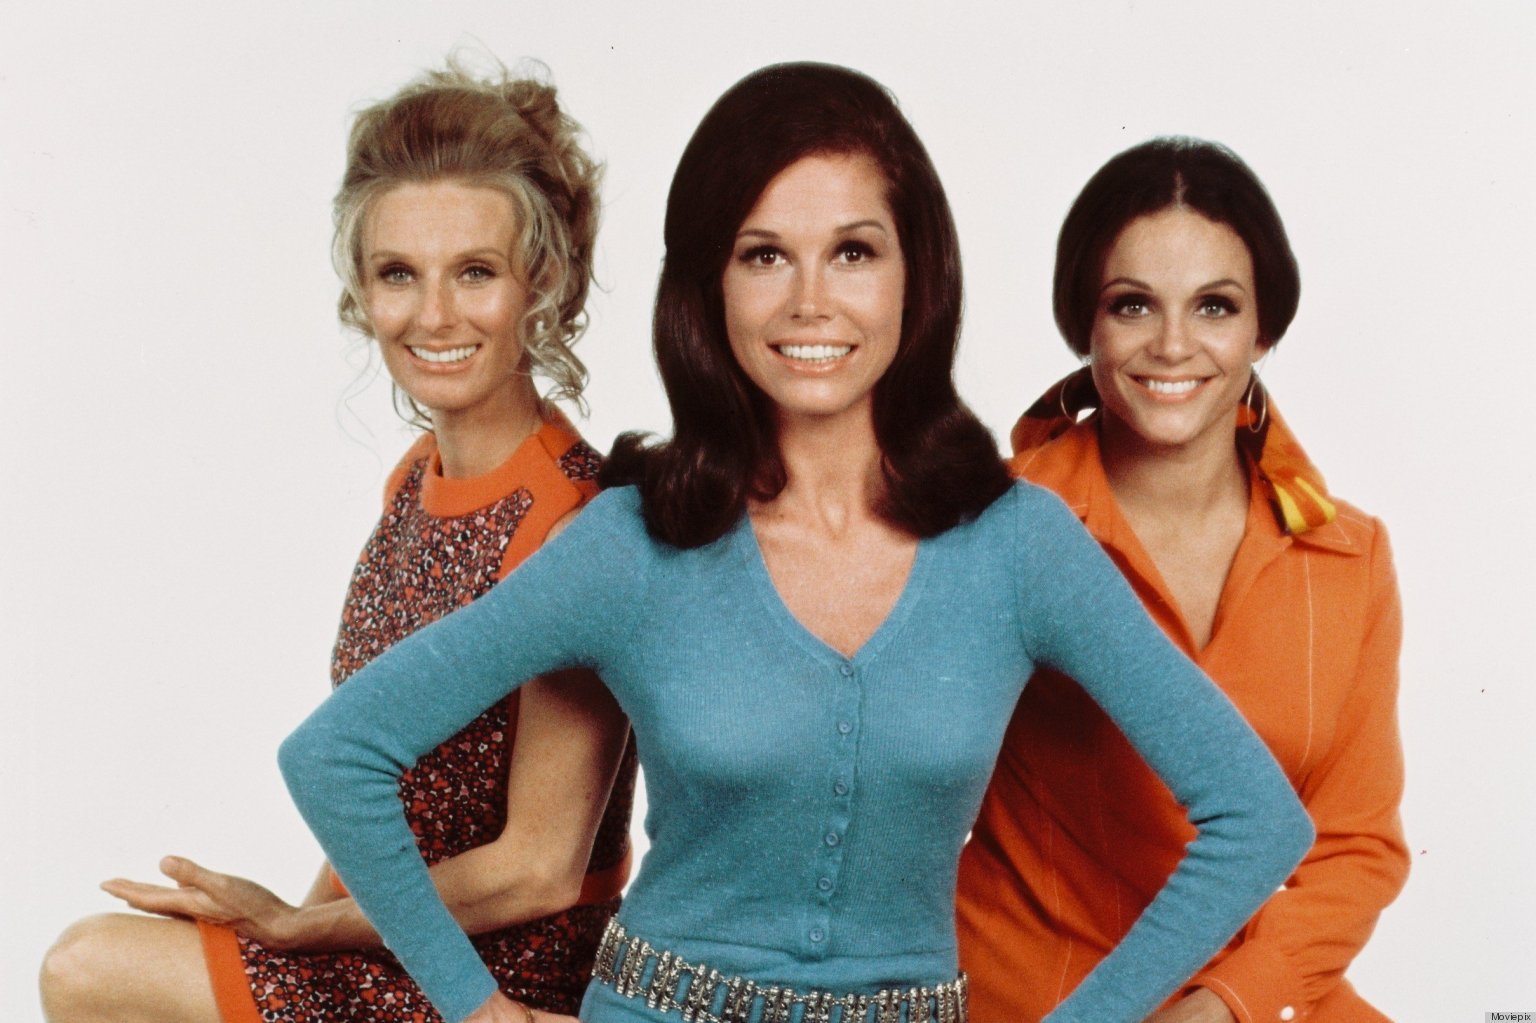 Mary tyler moore a tribute for the funny lady blogathon the motion pictures - Mary tyler moore show ...